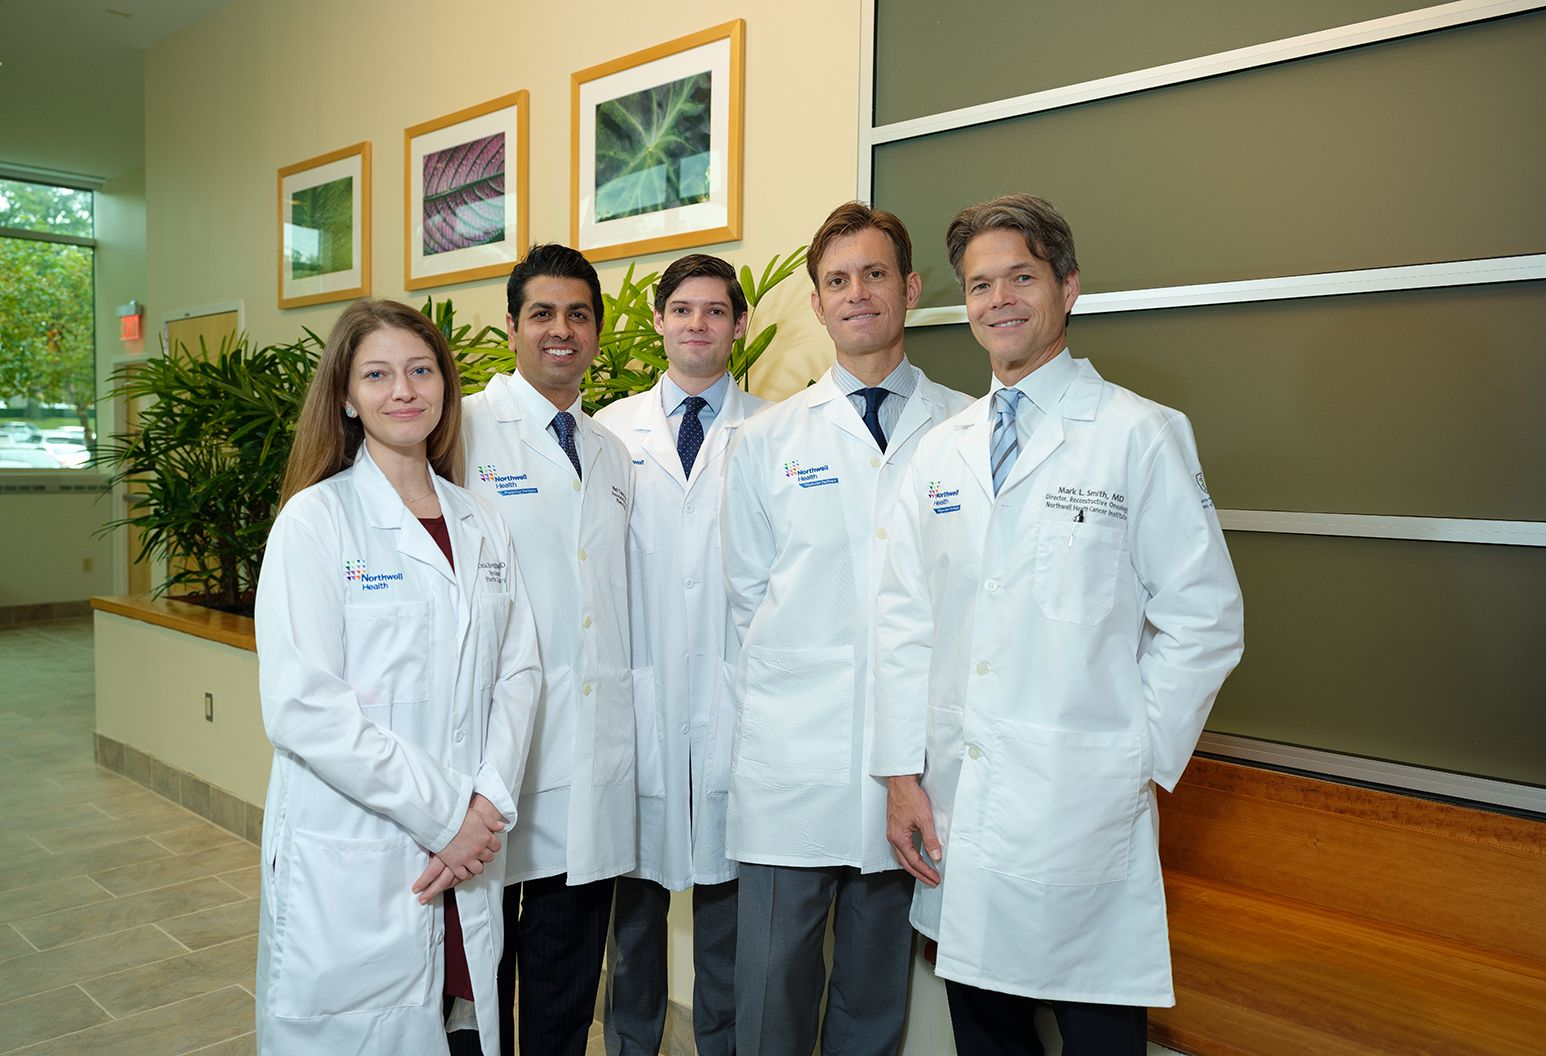 A group of one female doctor and four male doctors in white Northwell lab coats smile at the camera.